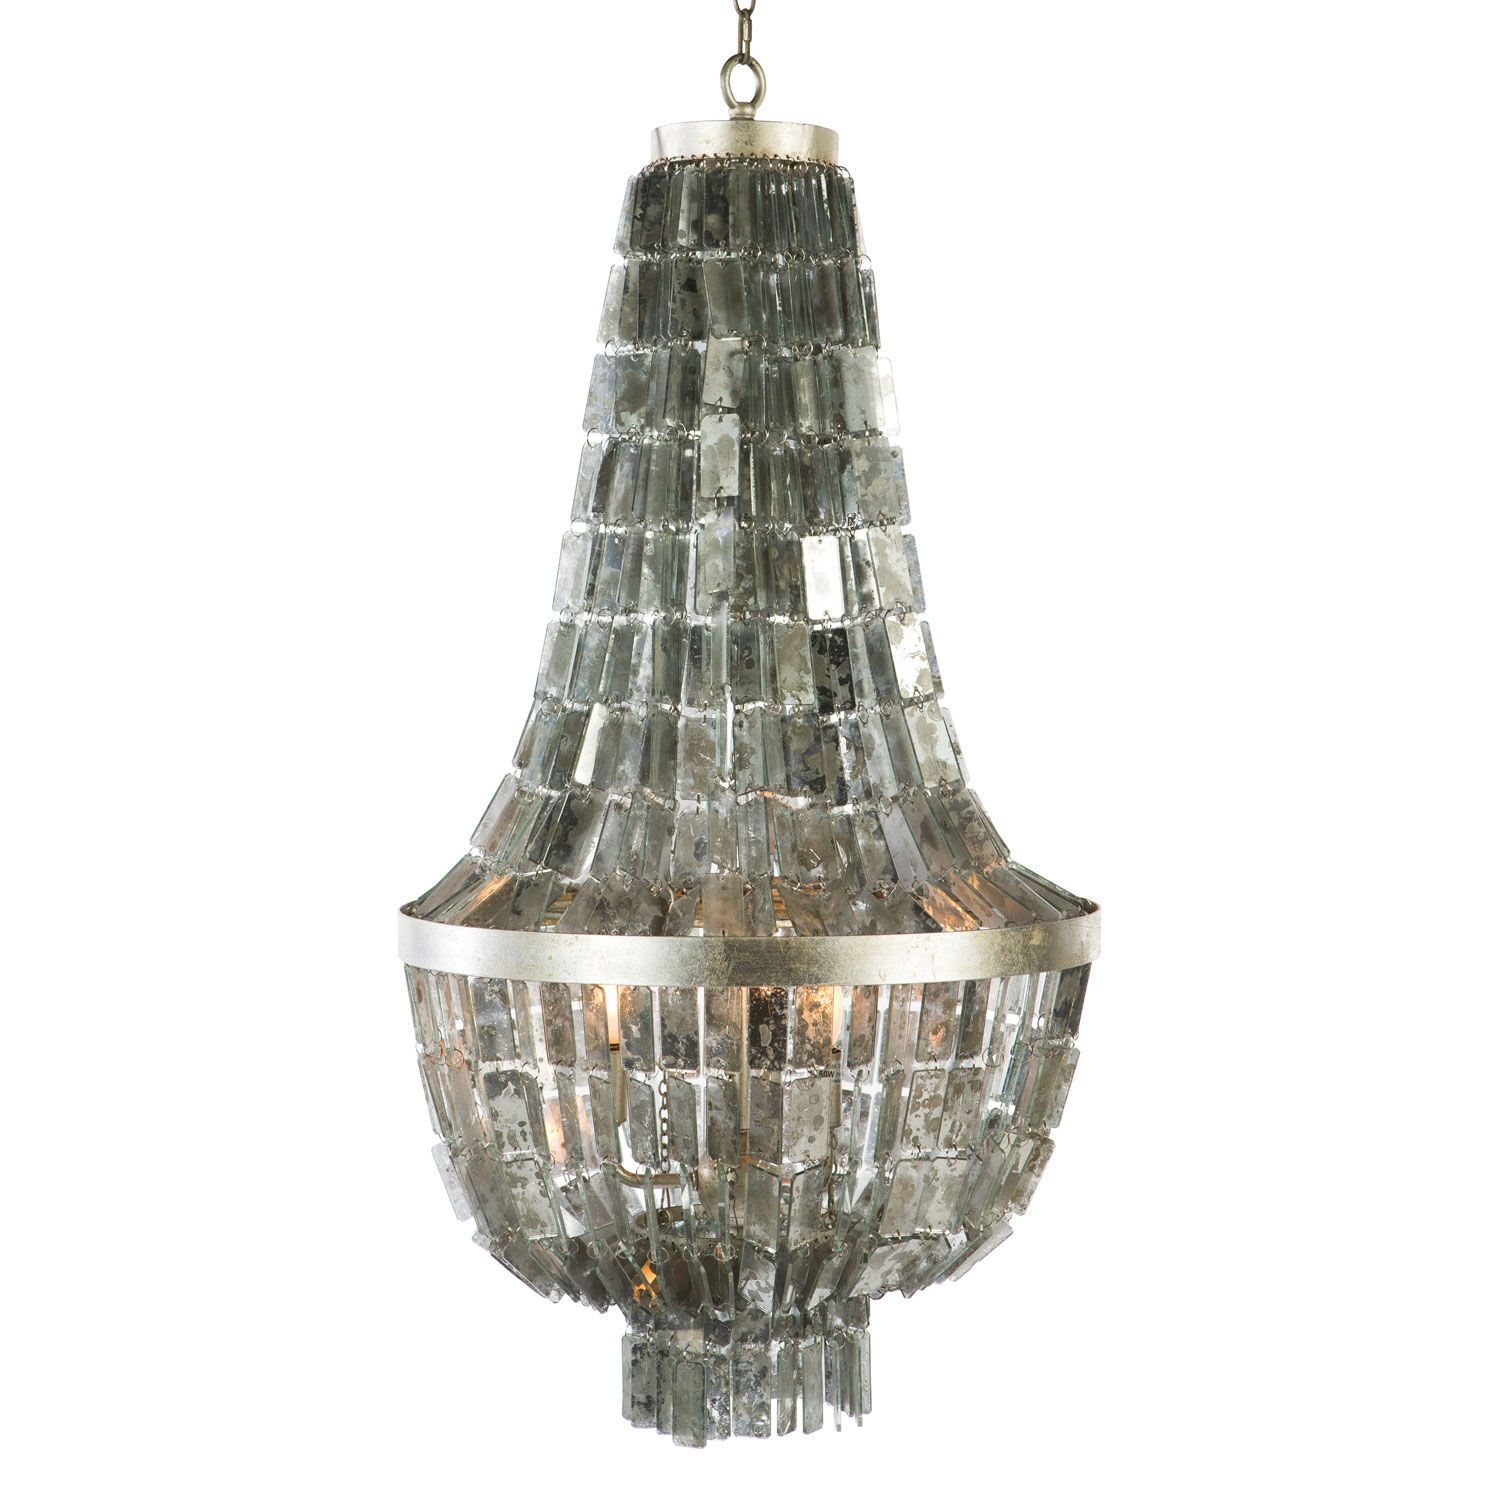 Aidan gray lighting glendive mirror small chandelier laylagrayce discover a beautiful collection of shabby chic chandeliers french chandeliers coastal style chandeliers and rustic chandeliers belle escape searches the arubaitofo Gallery